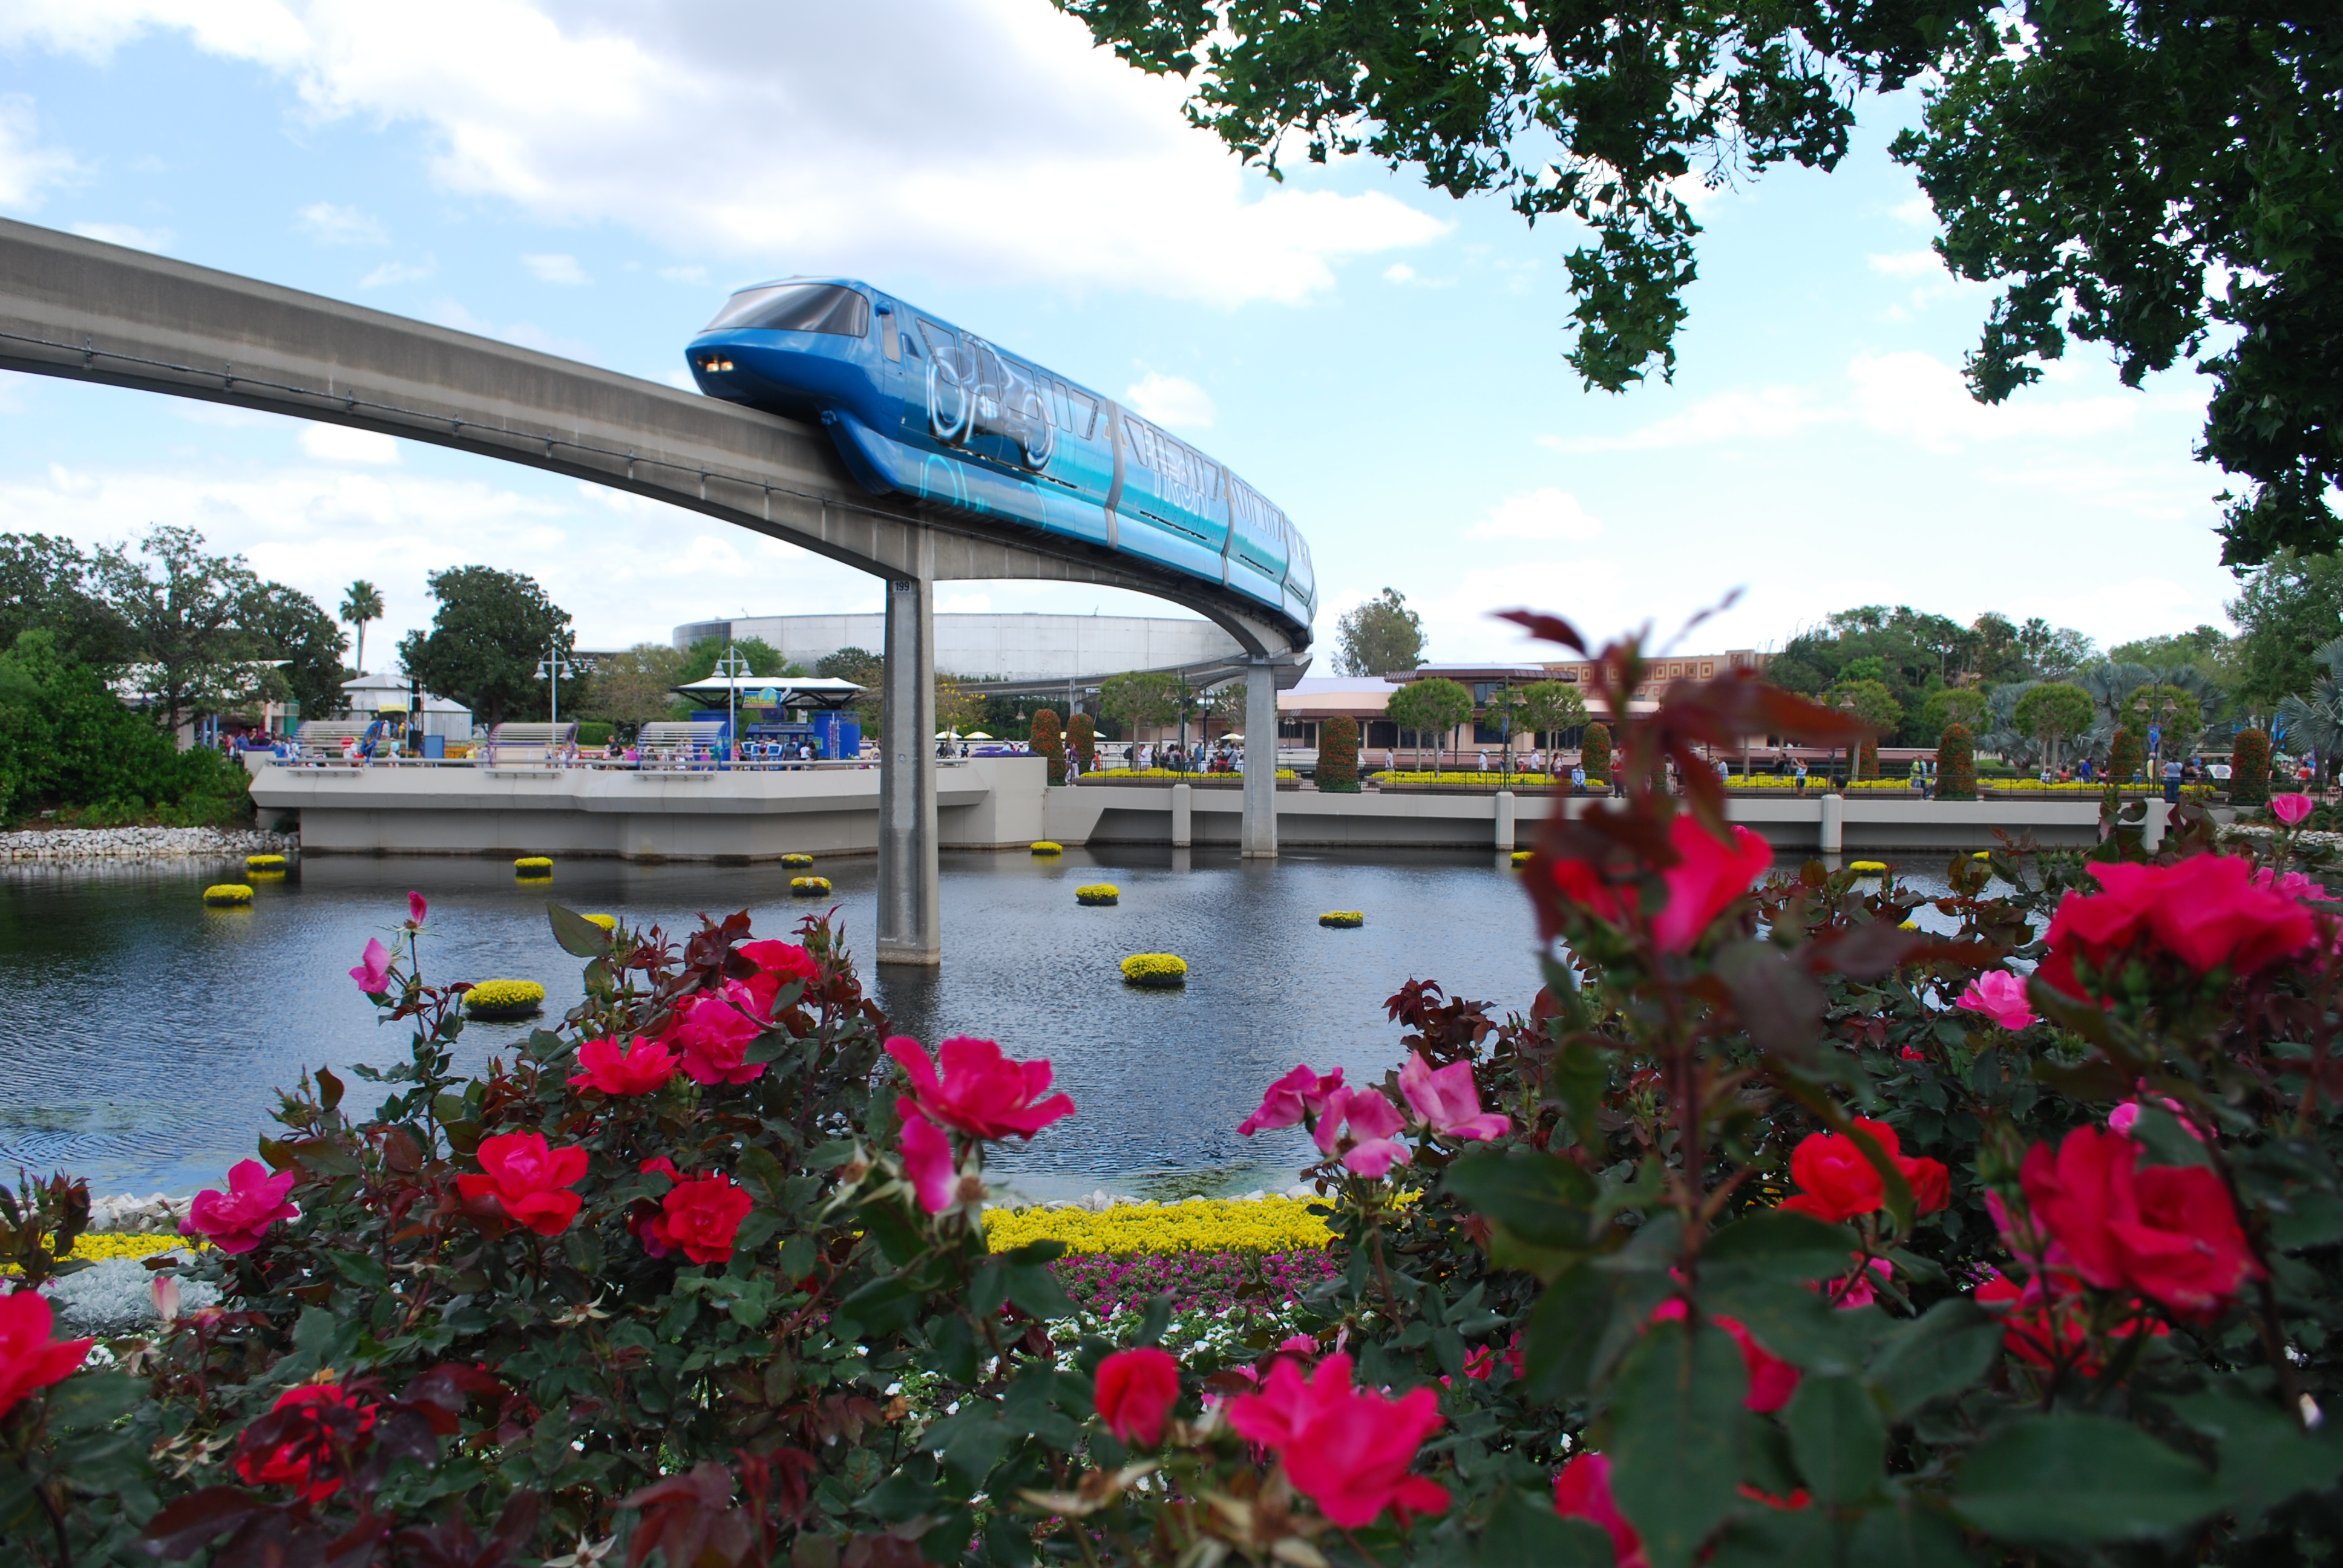 Monorail arriving Epcot Center